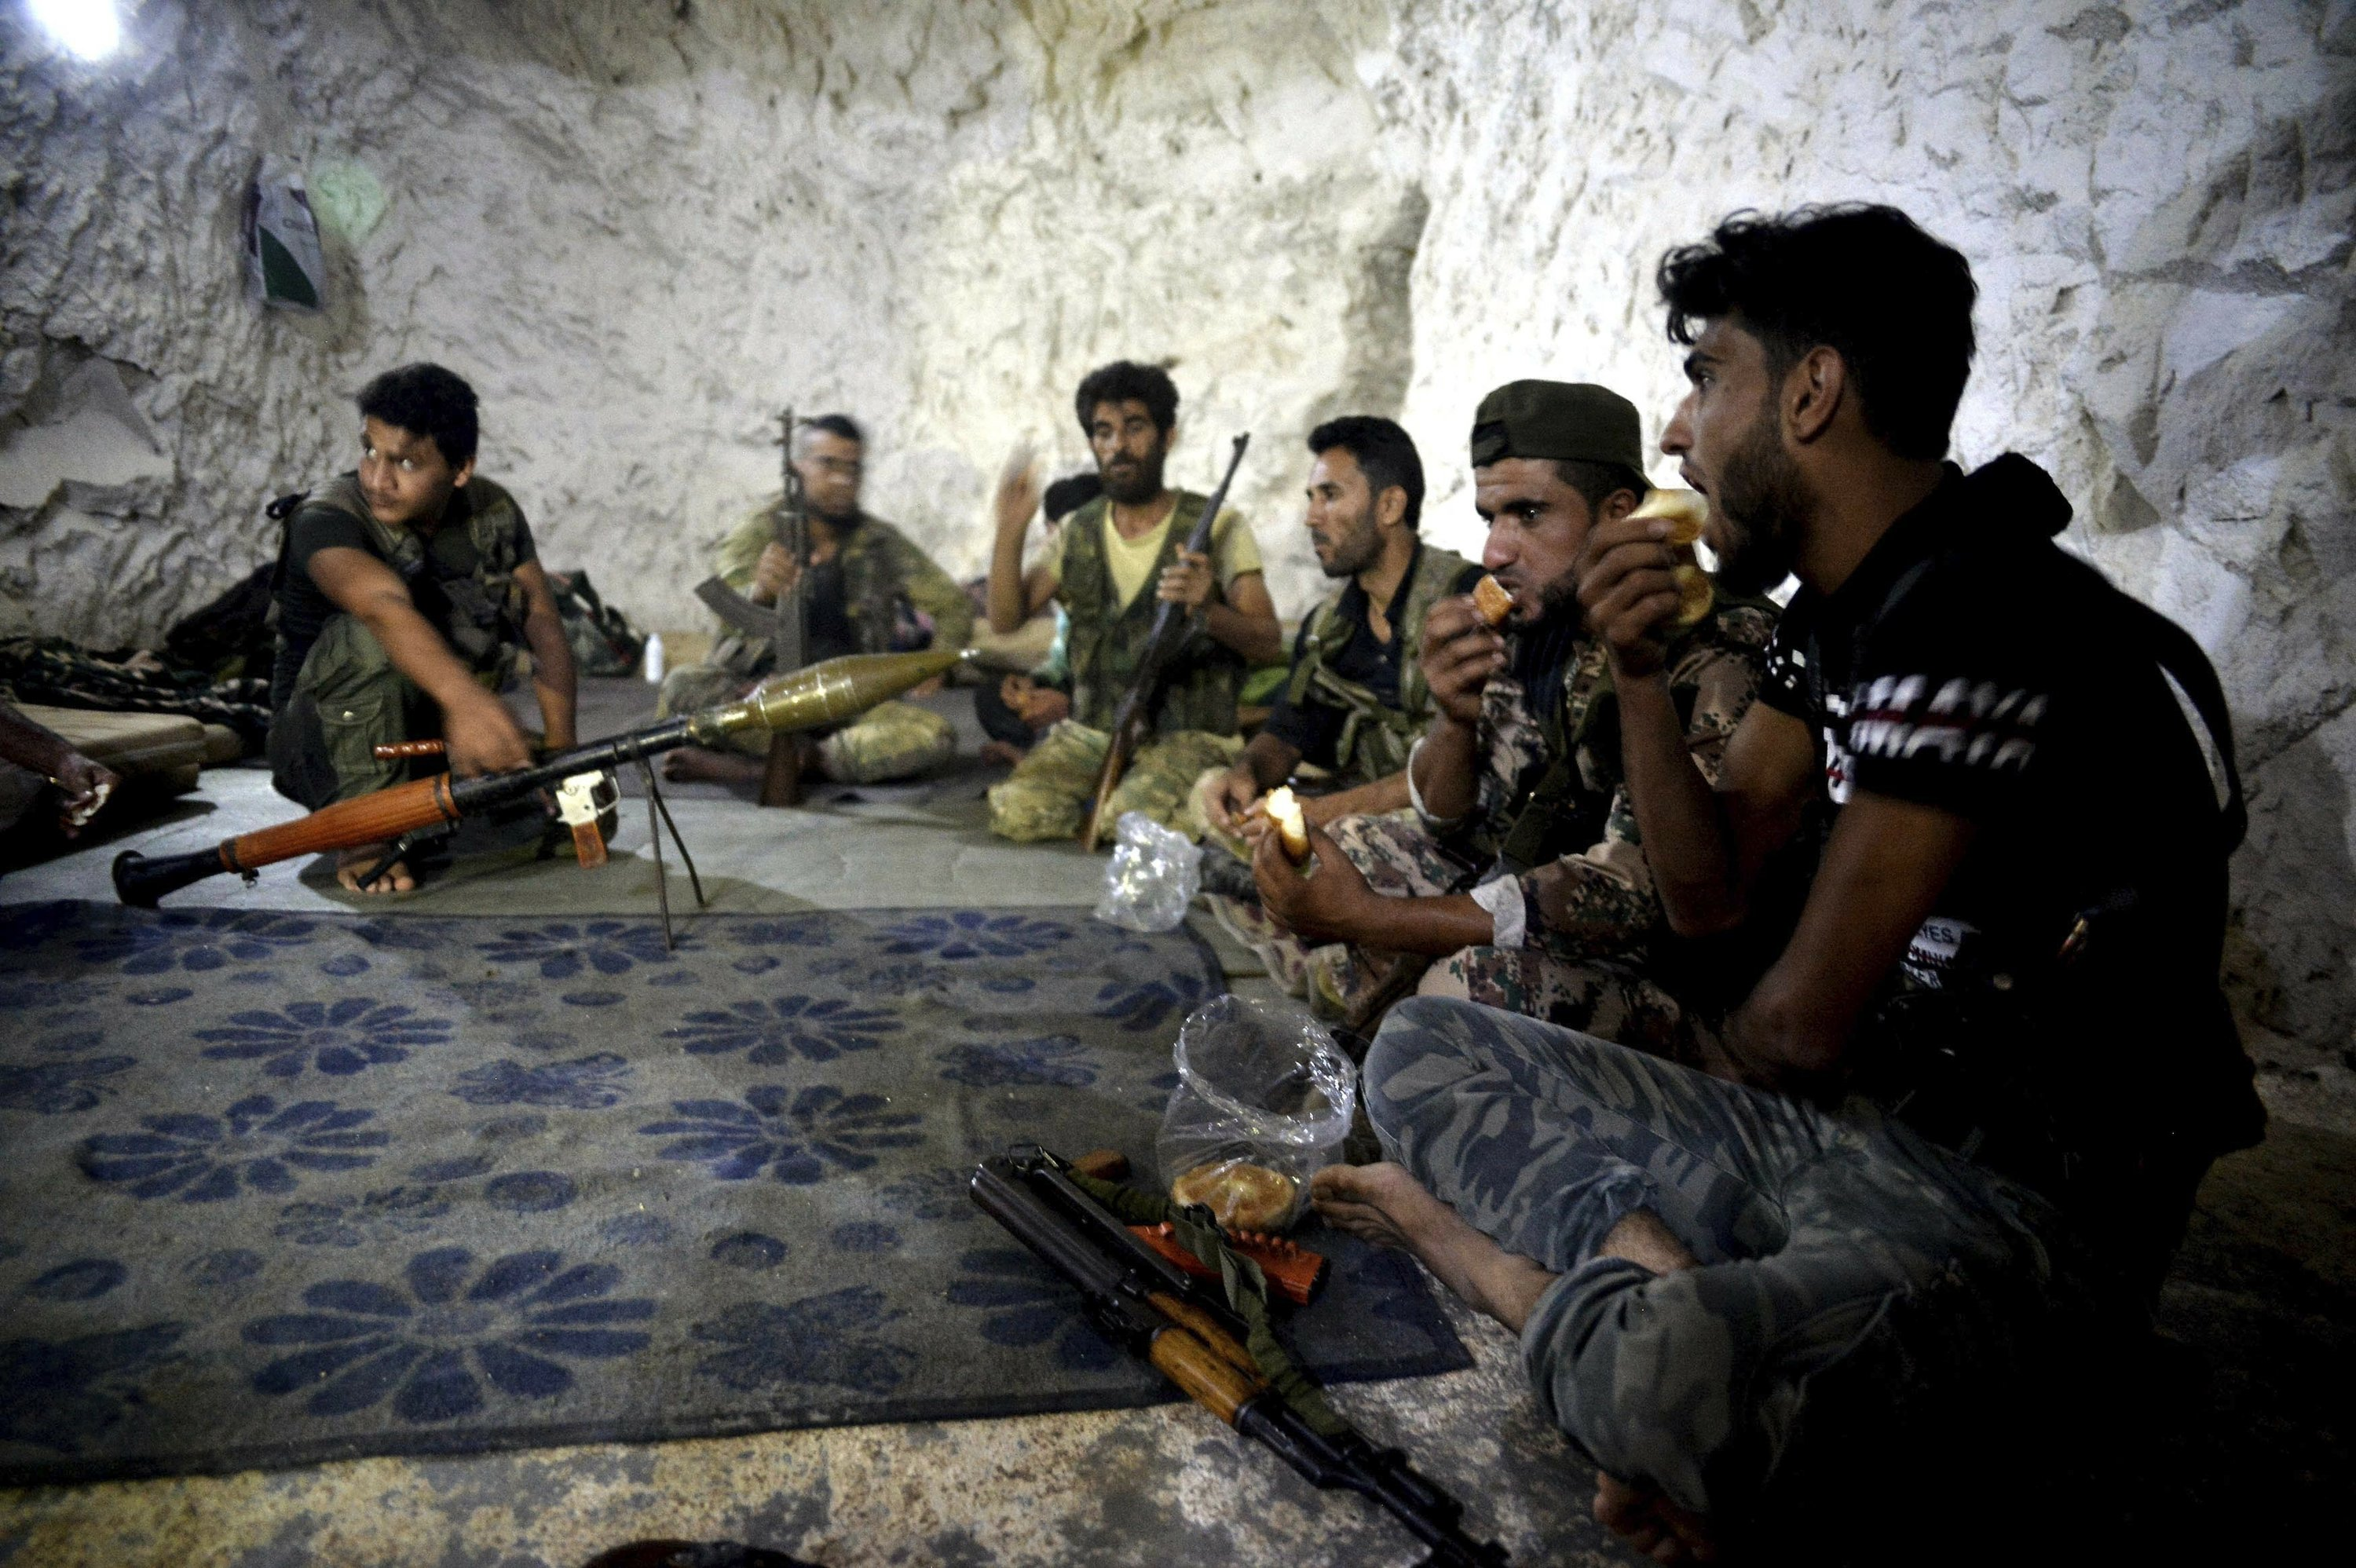 Last stand: Syria's rebel Idlib prepares for a losing battle